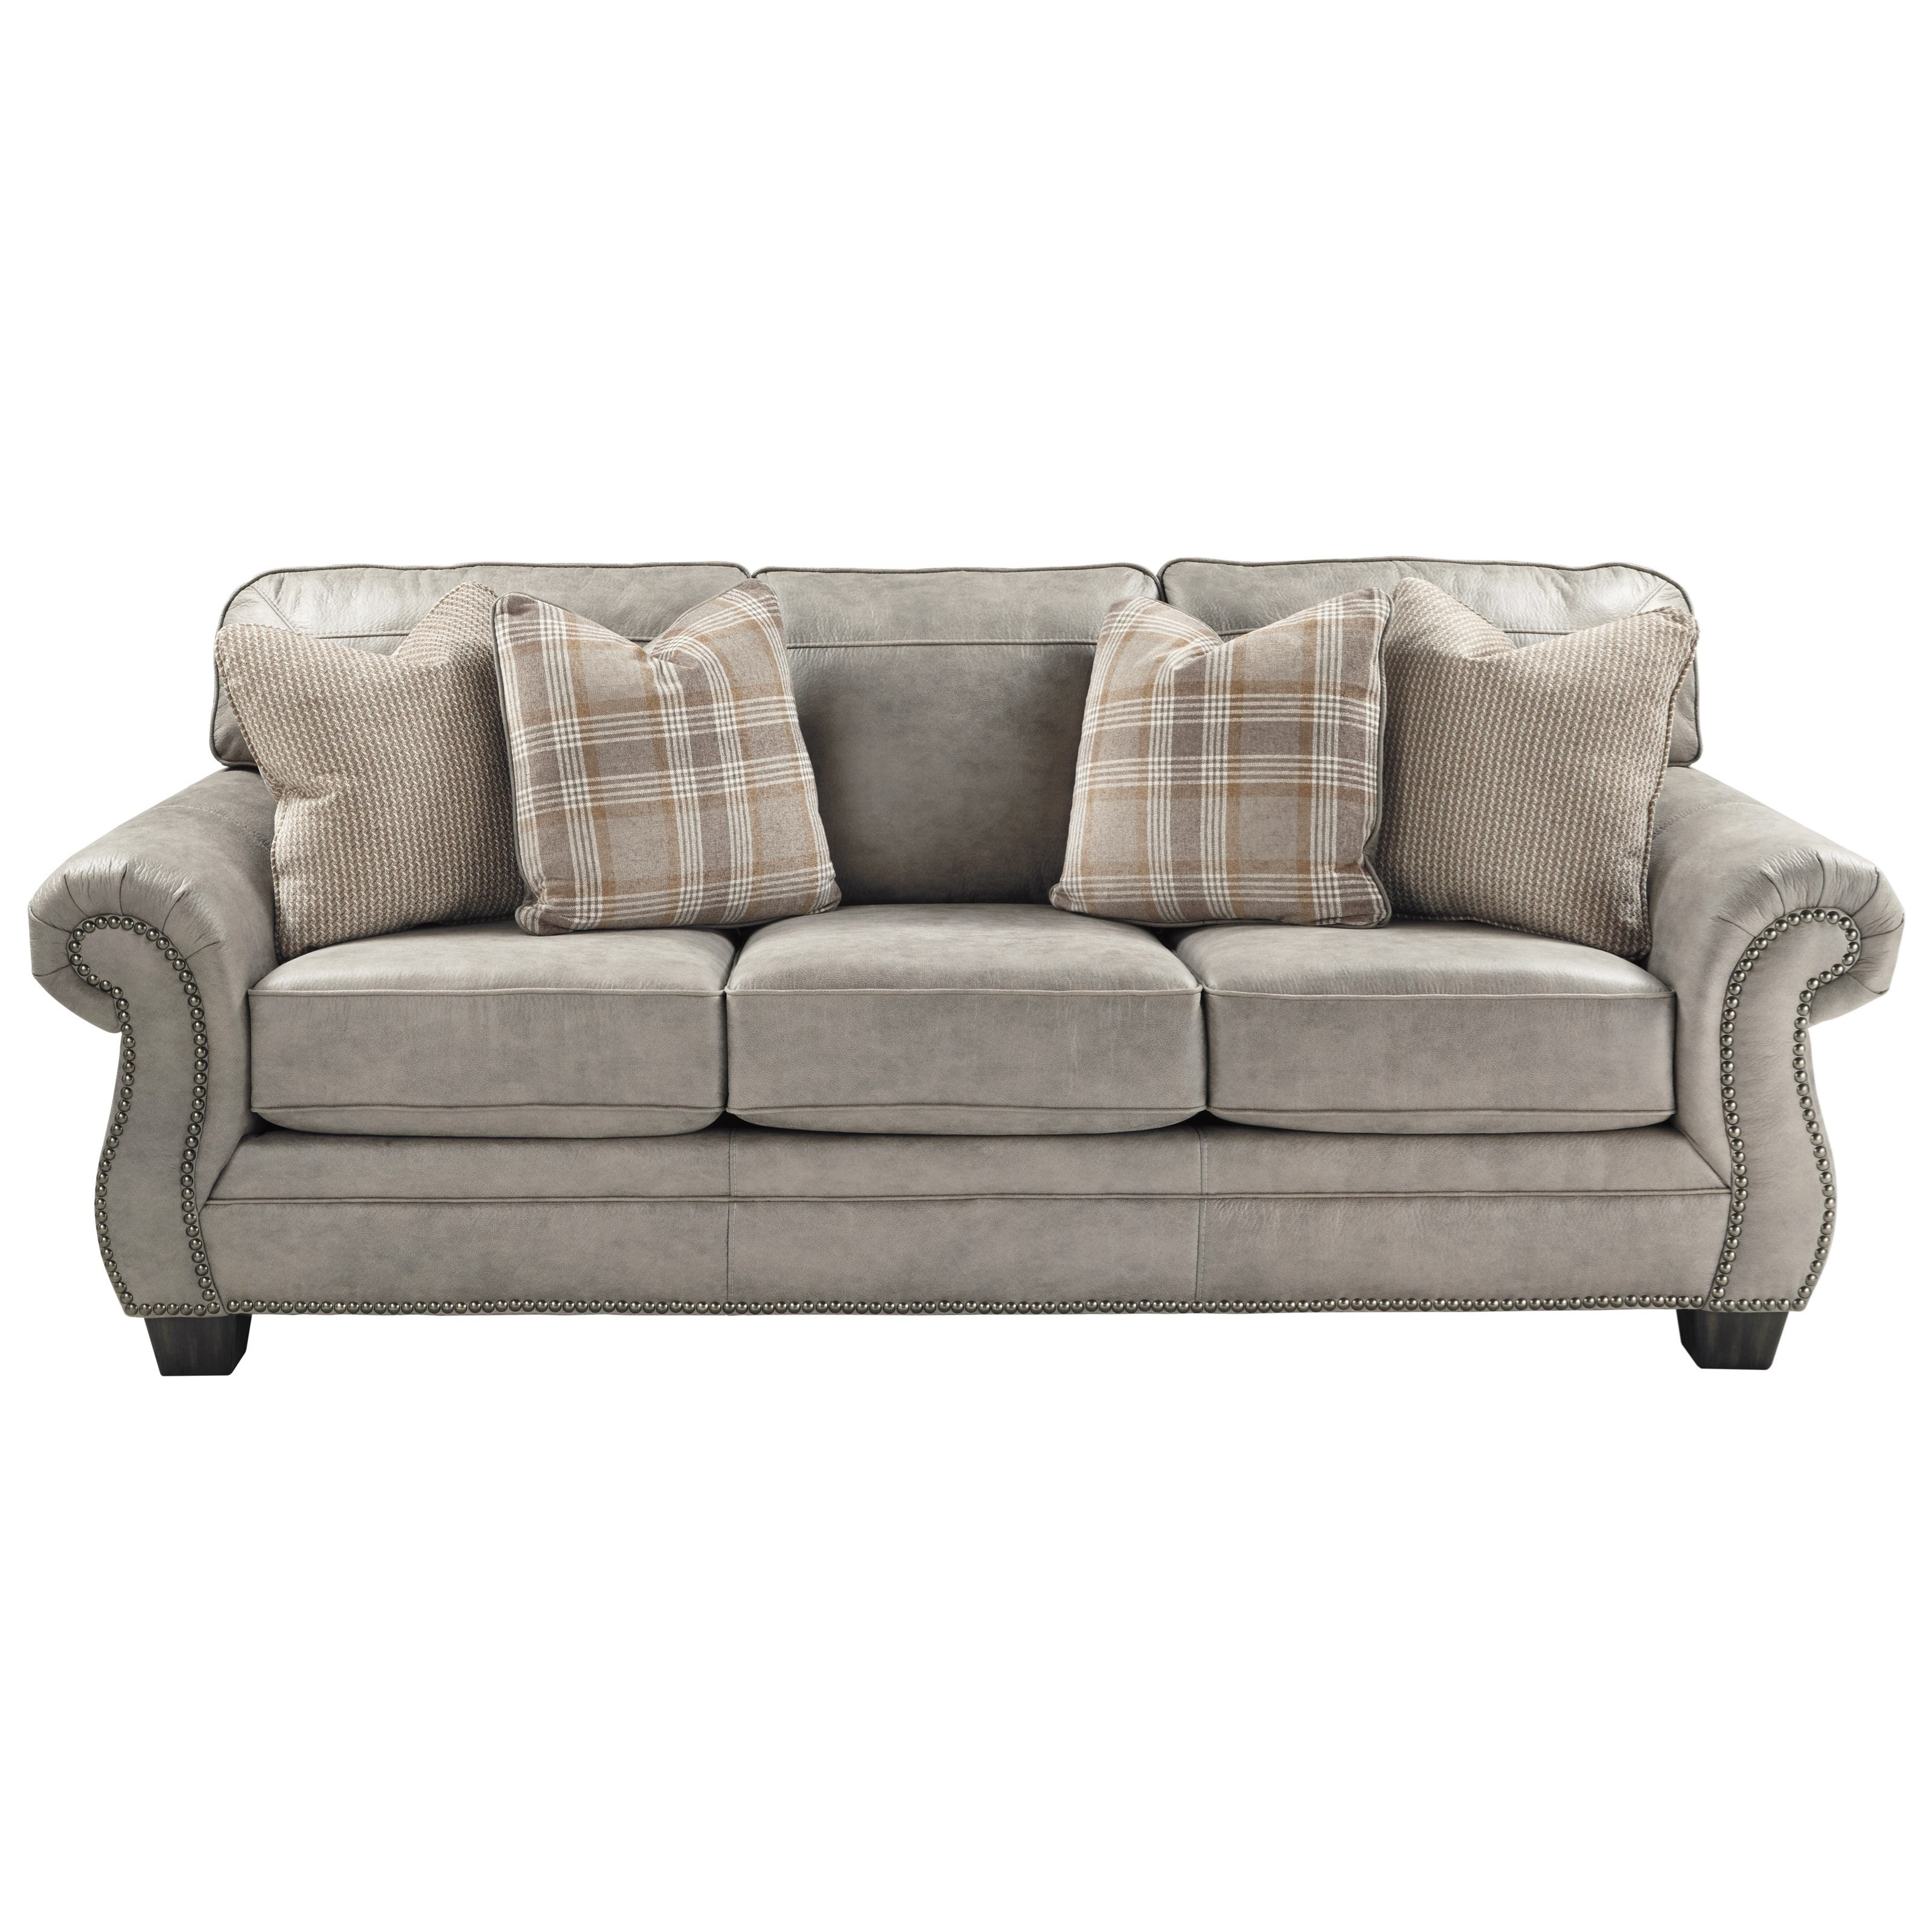 Signature Design By Ashley Olsberg Transitional Sofa With